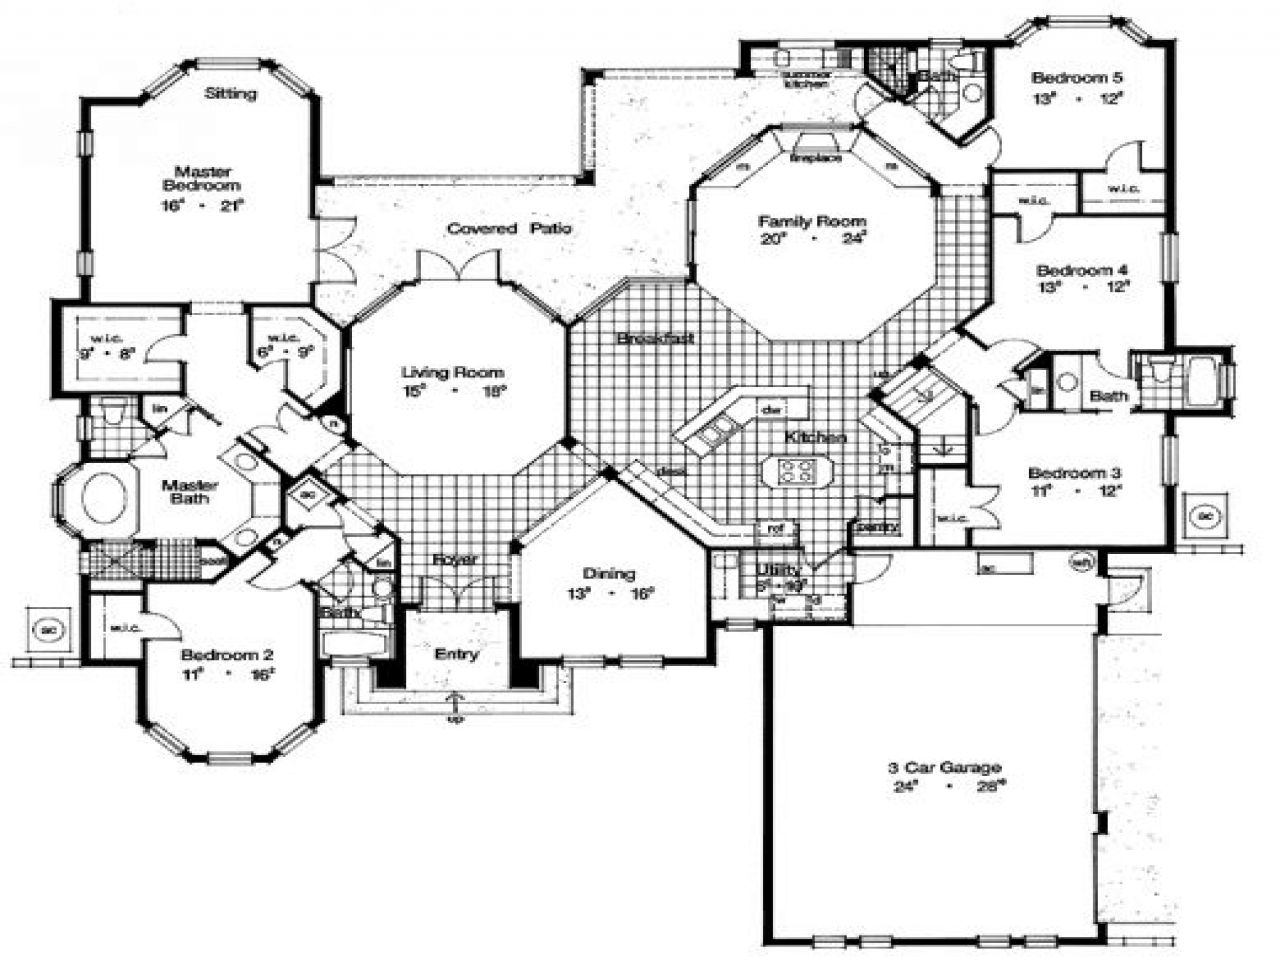 blueprints minecraft house plans for homes free new tiny ...